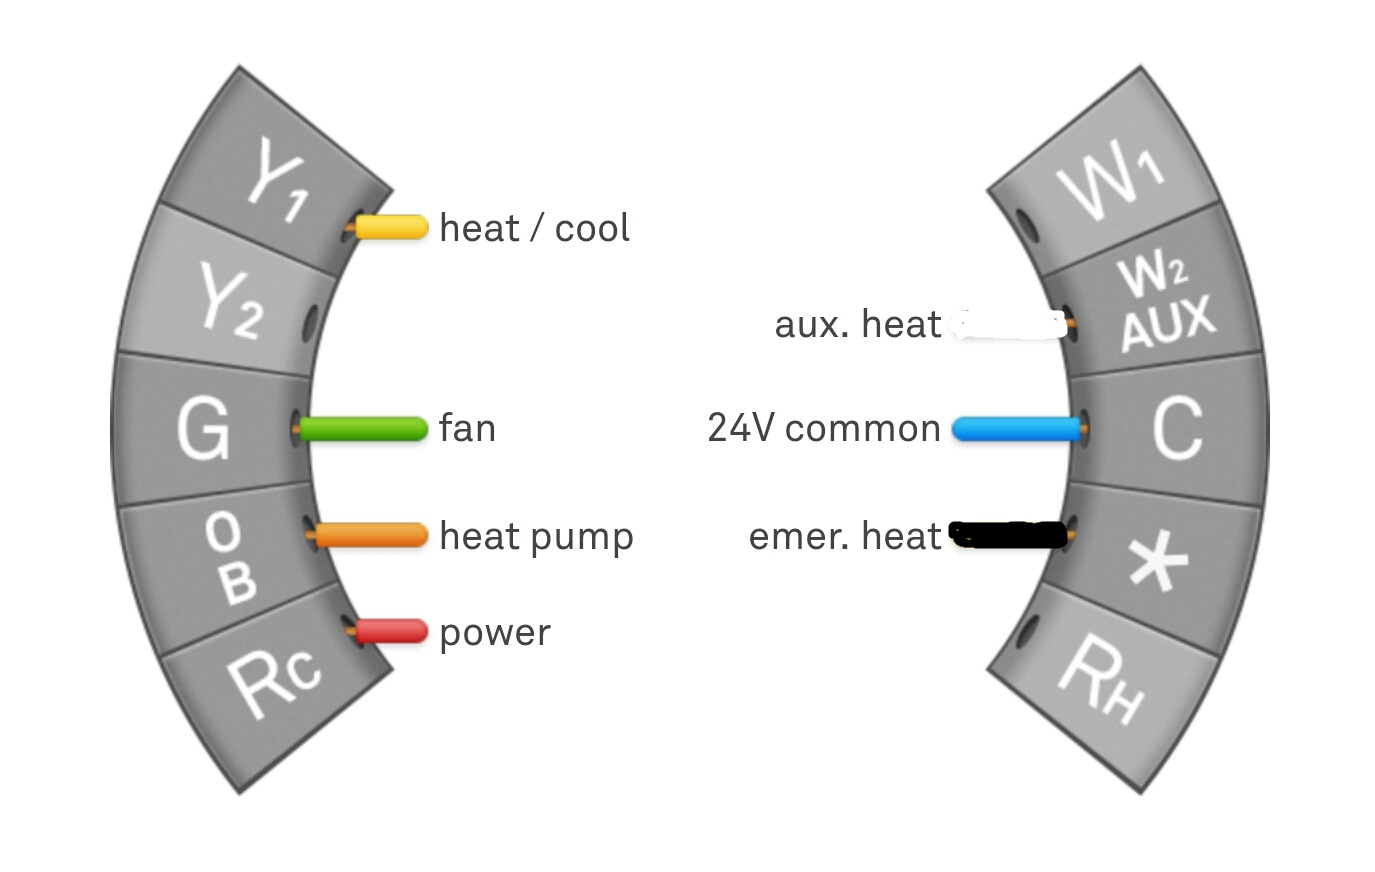 Nest Thermostat E Wiring Diagram Heat Pump of Dragonsfootball17 on nest thermostat backplate, nest thermostat setup, nest thermostat wires, nest thermostat connections, nest learning thermostat wiring, nest thermostat problems, nest thermostat review, nest smart thermostat vs honeywell, nest thermostat heat pump, nest thermostat controls, nest thermostat installation, nest thermostat humidifier wiring, halogen transformer circuit diagram, nest zoned wiring, nest thermostat parts, nest thermostat battery, electronic thermostat circuit diagram, nest 2 stage heating wiring, nest thermostat wiring plate, nest wiring guide,